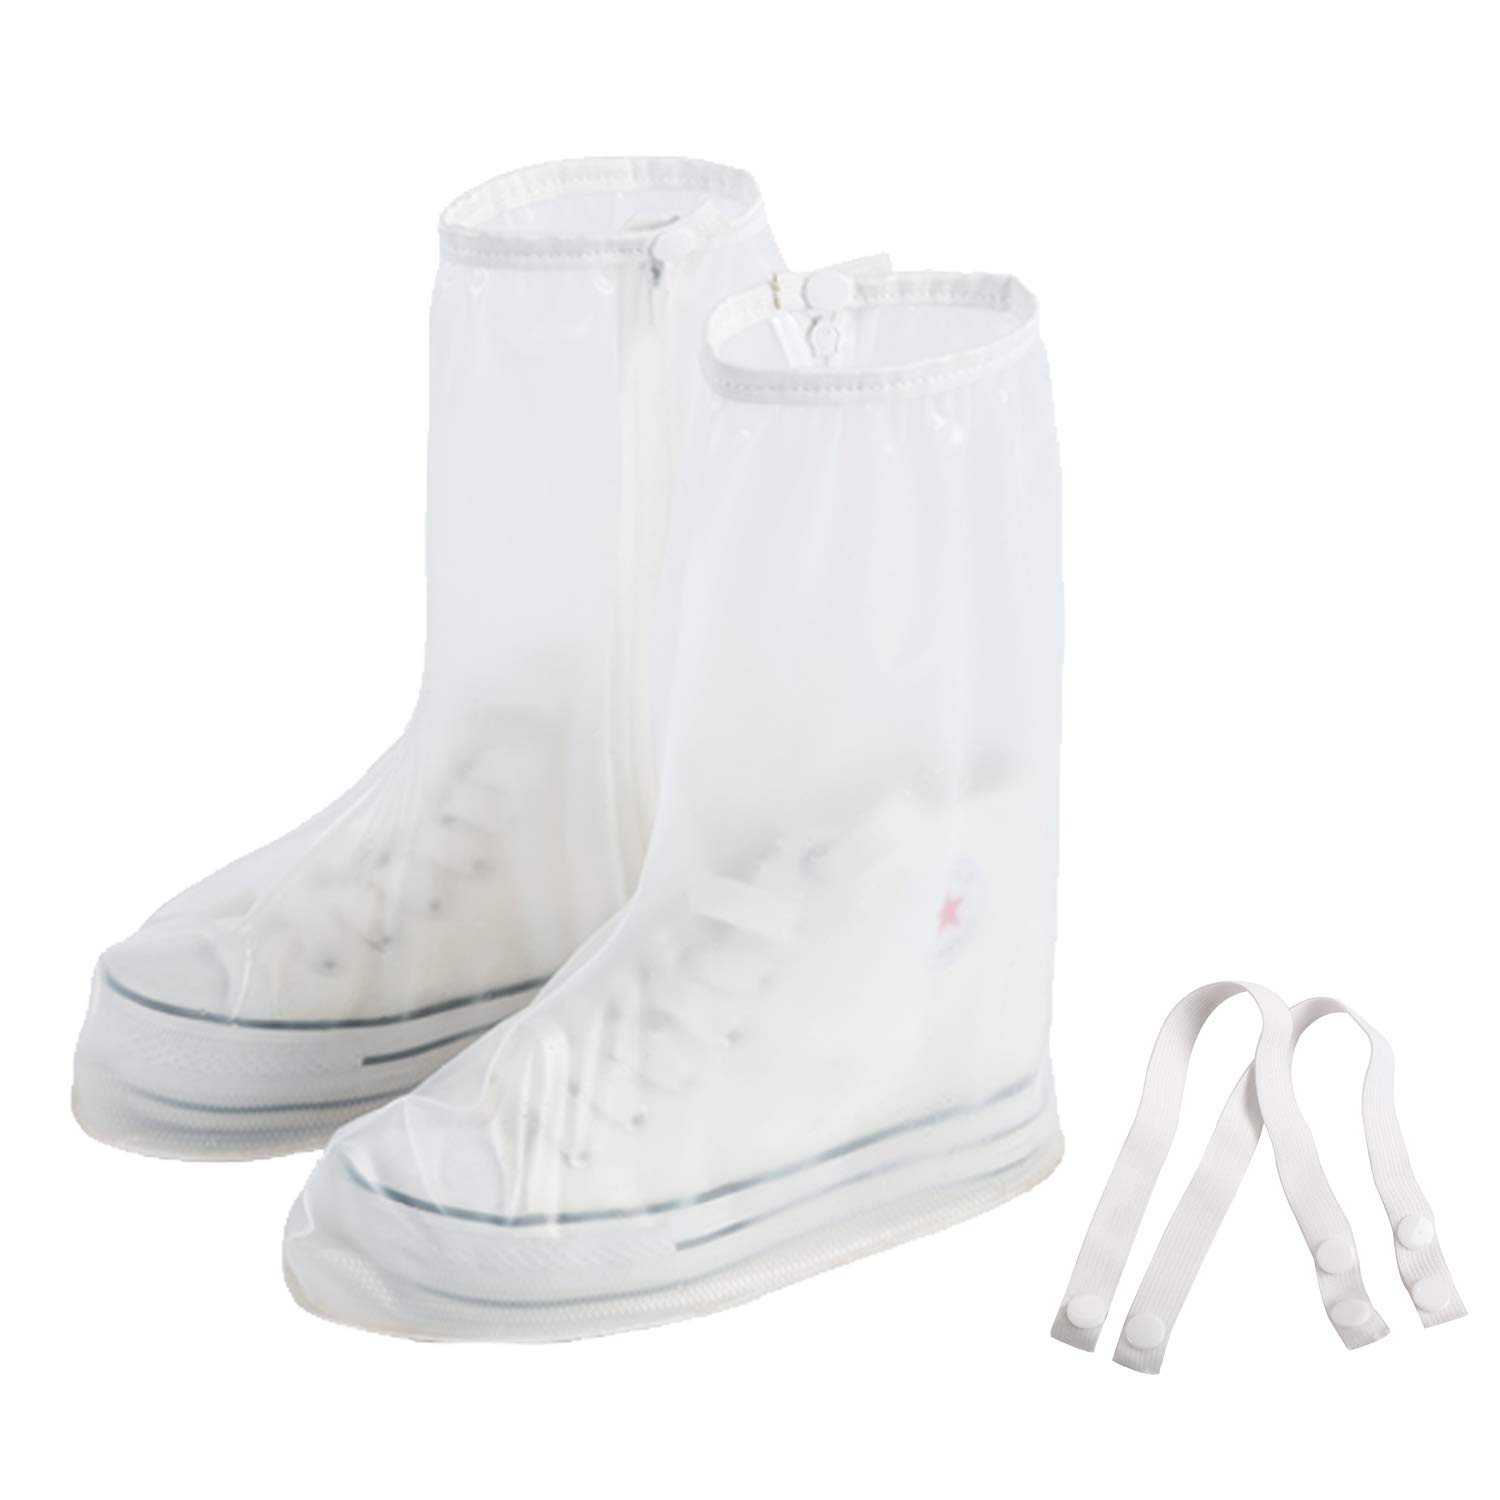 White Rain Shoe Covers Waterproof Boot Cover With Side Zipper Motorcycle Rain Boot Covers Reusable Man 3.5-4 Women 5-5.5 (S)